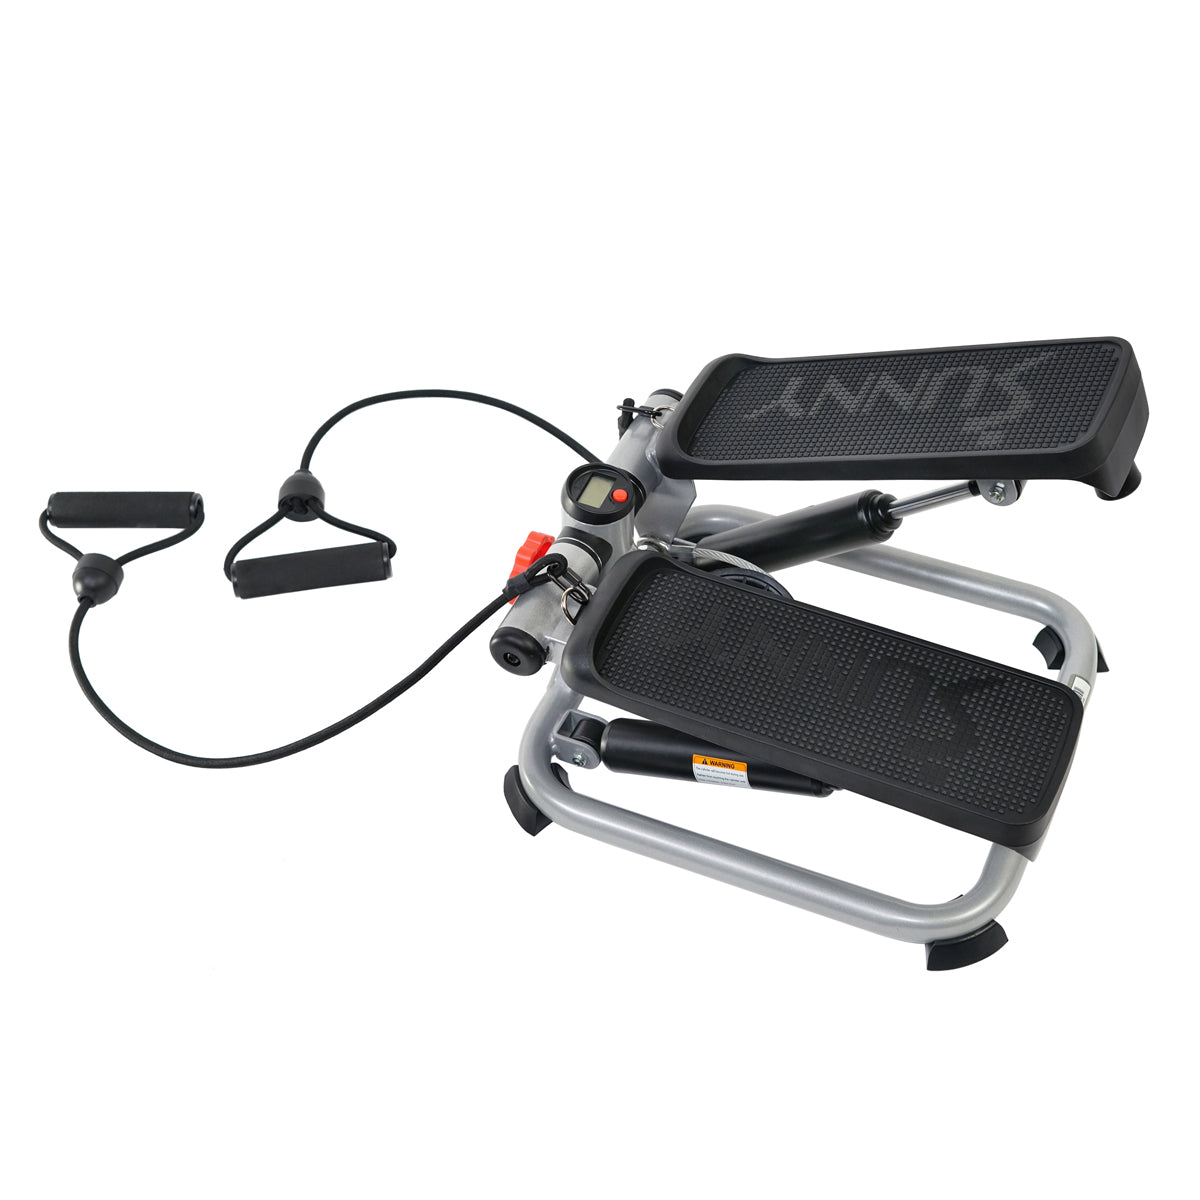 sunny-health-fitness-stepper-total-body-stepper-machine-SF-S0978-resistance-bands